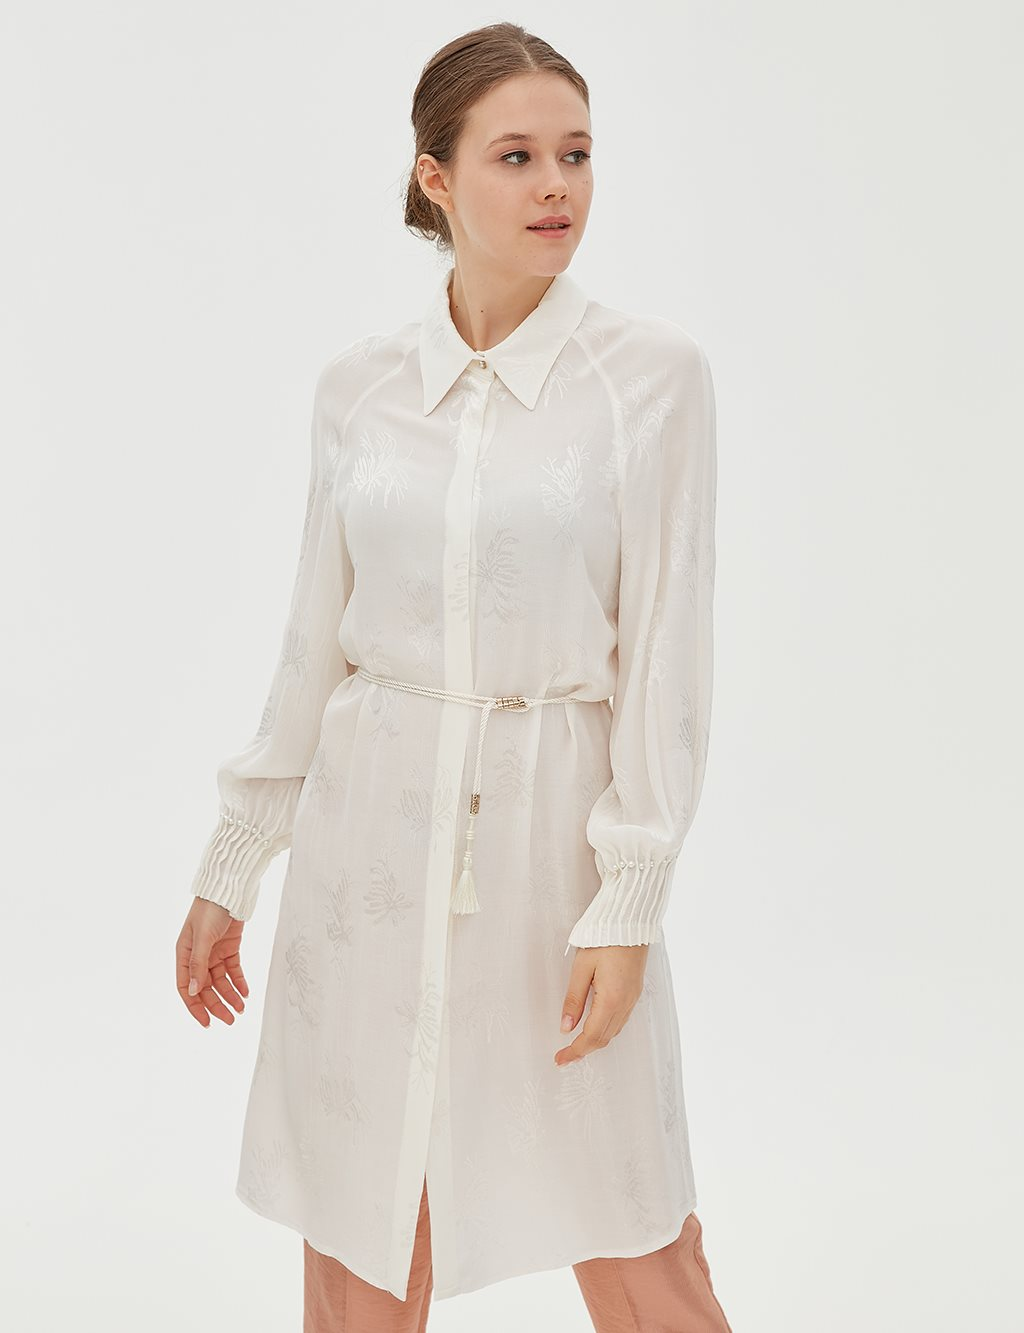 Leaf Patterned Ruched Sleeve Tunic B20 21048 White